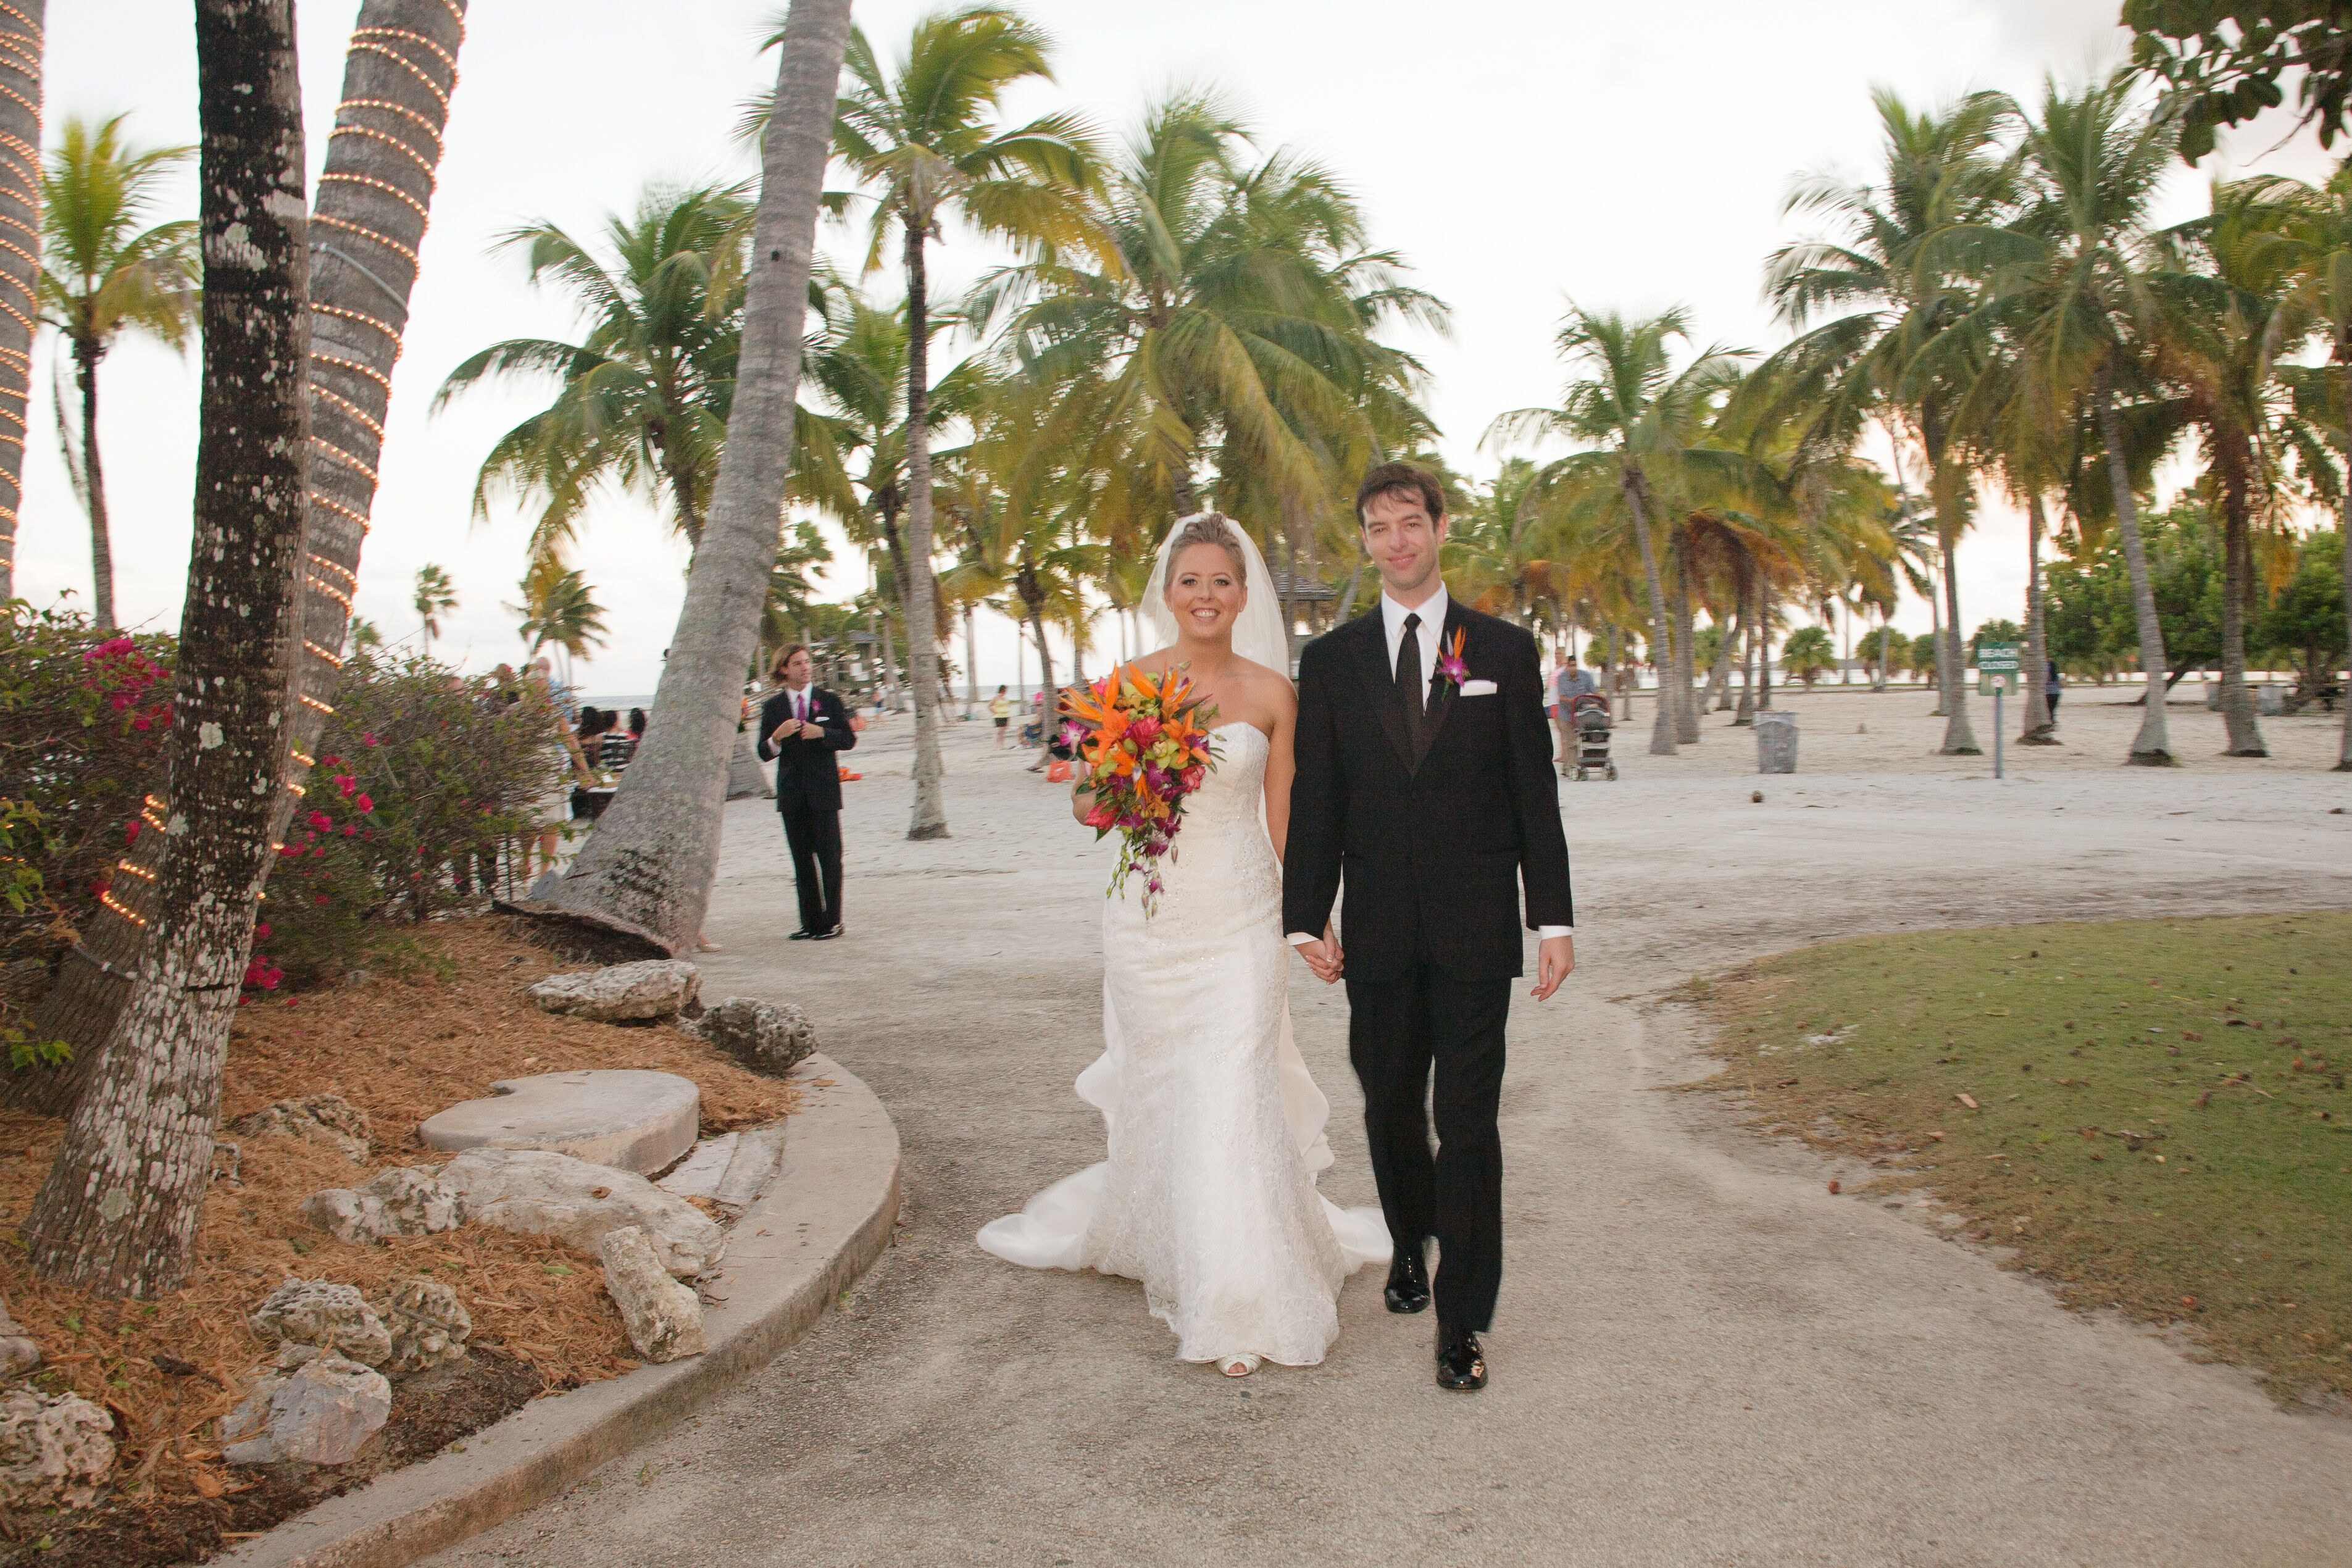 A tropical wedding at red fish grill in coral gables florida for Red fish restaurant